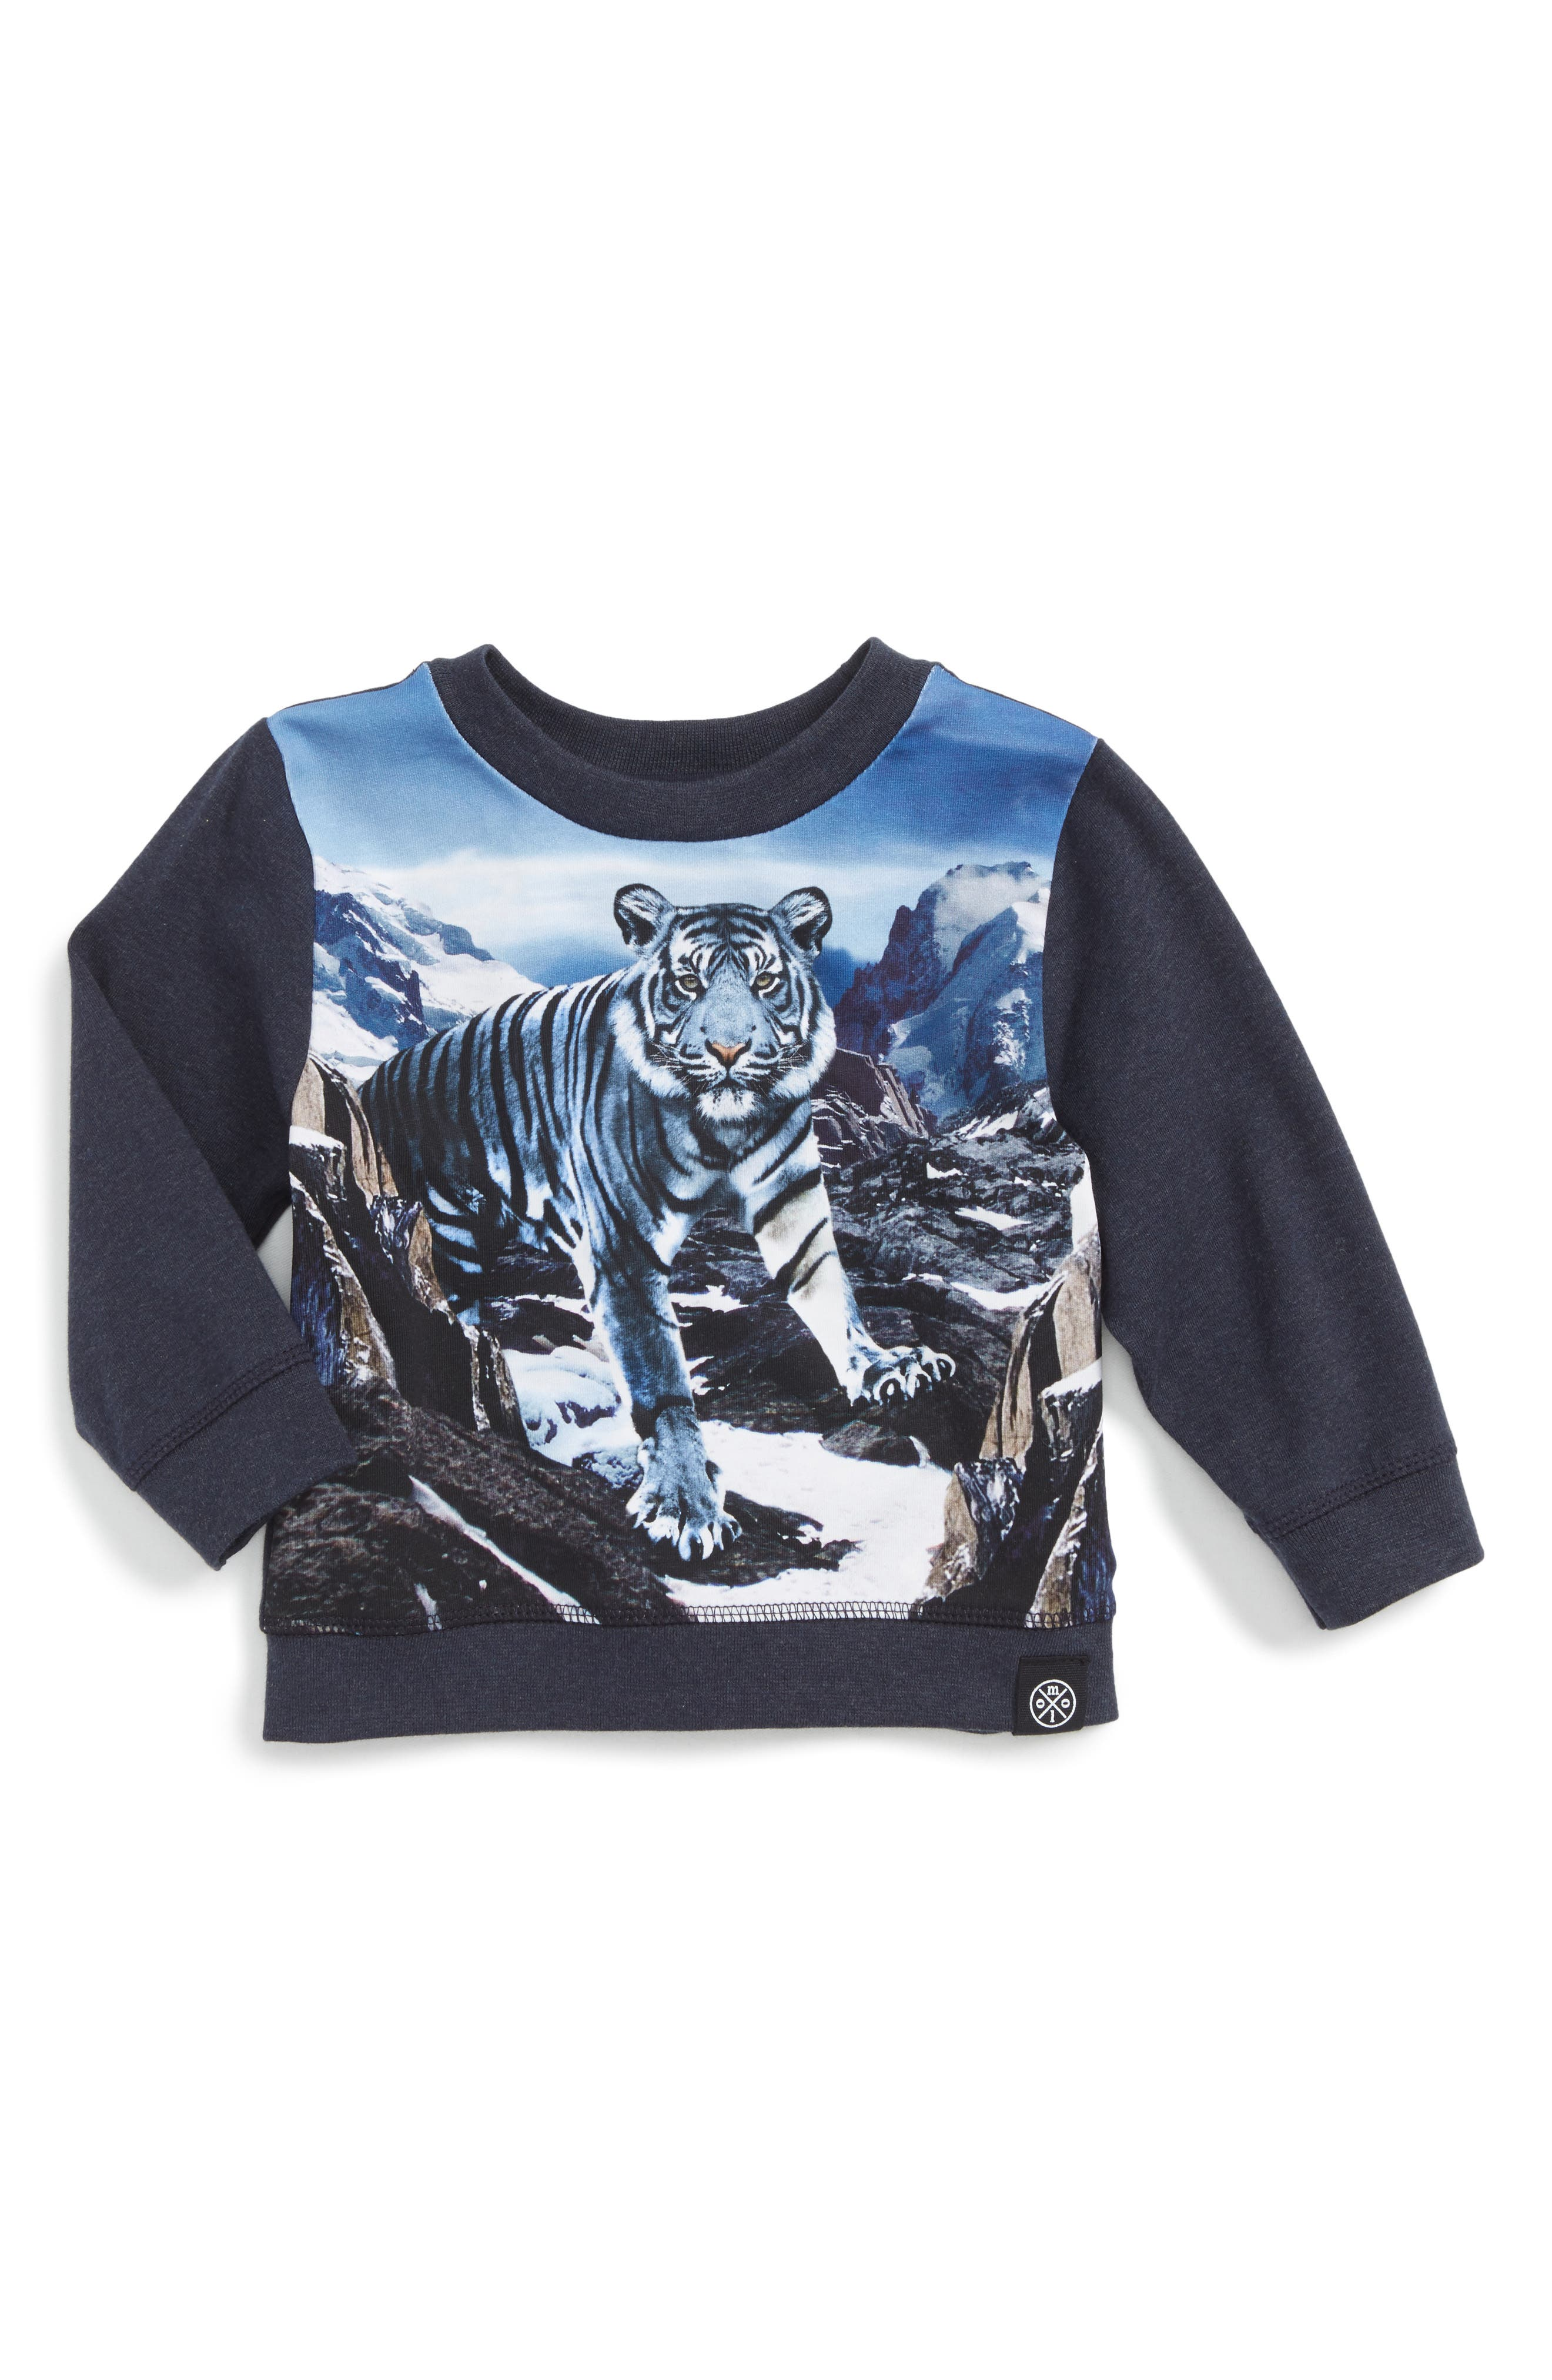 Alternate Image 1 Selected - Molo Tiger Graphic T-Shirt (Baby Boys)